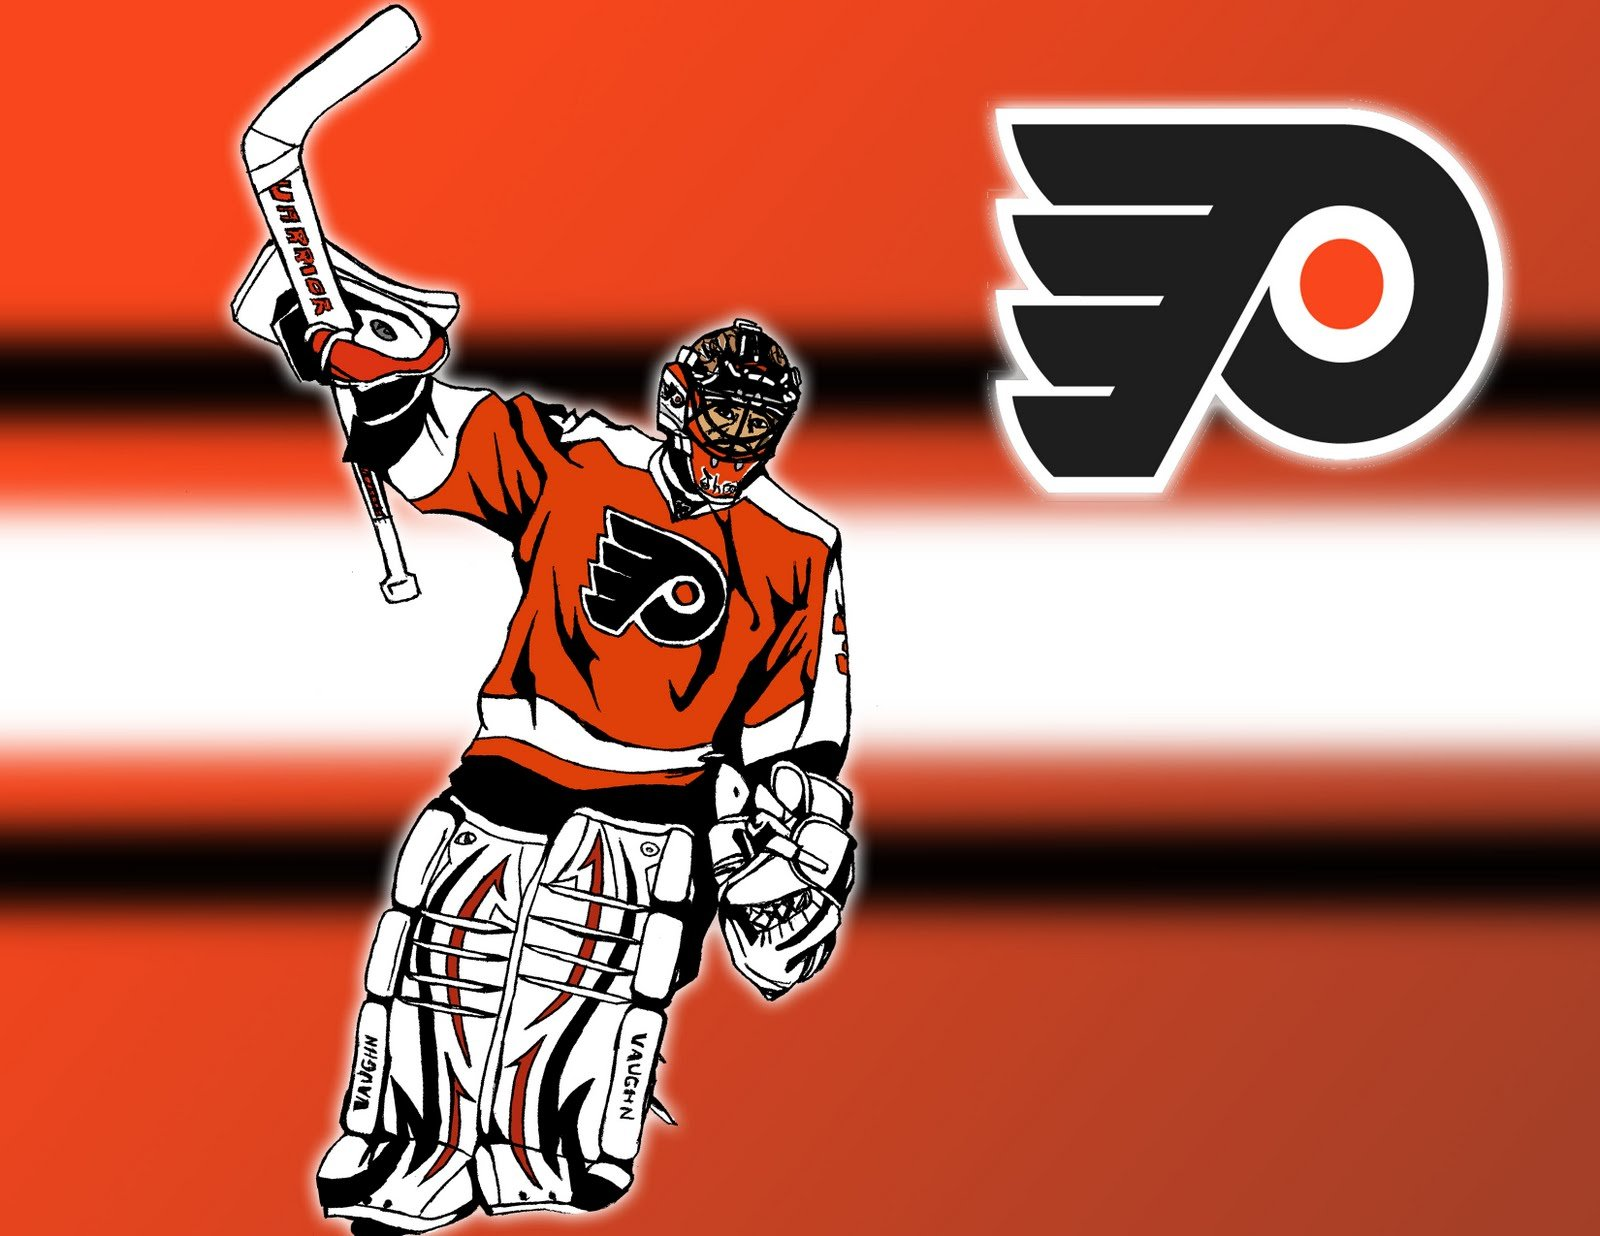 Philadelphia Flyers Wallpapers Wallpapertag: [75+] Philadelphia Flyers Wallpapers On WallpaperSafari